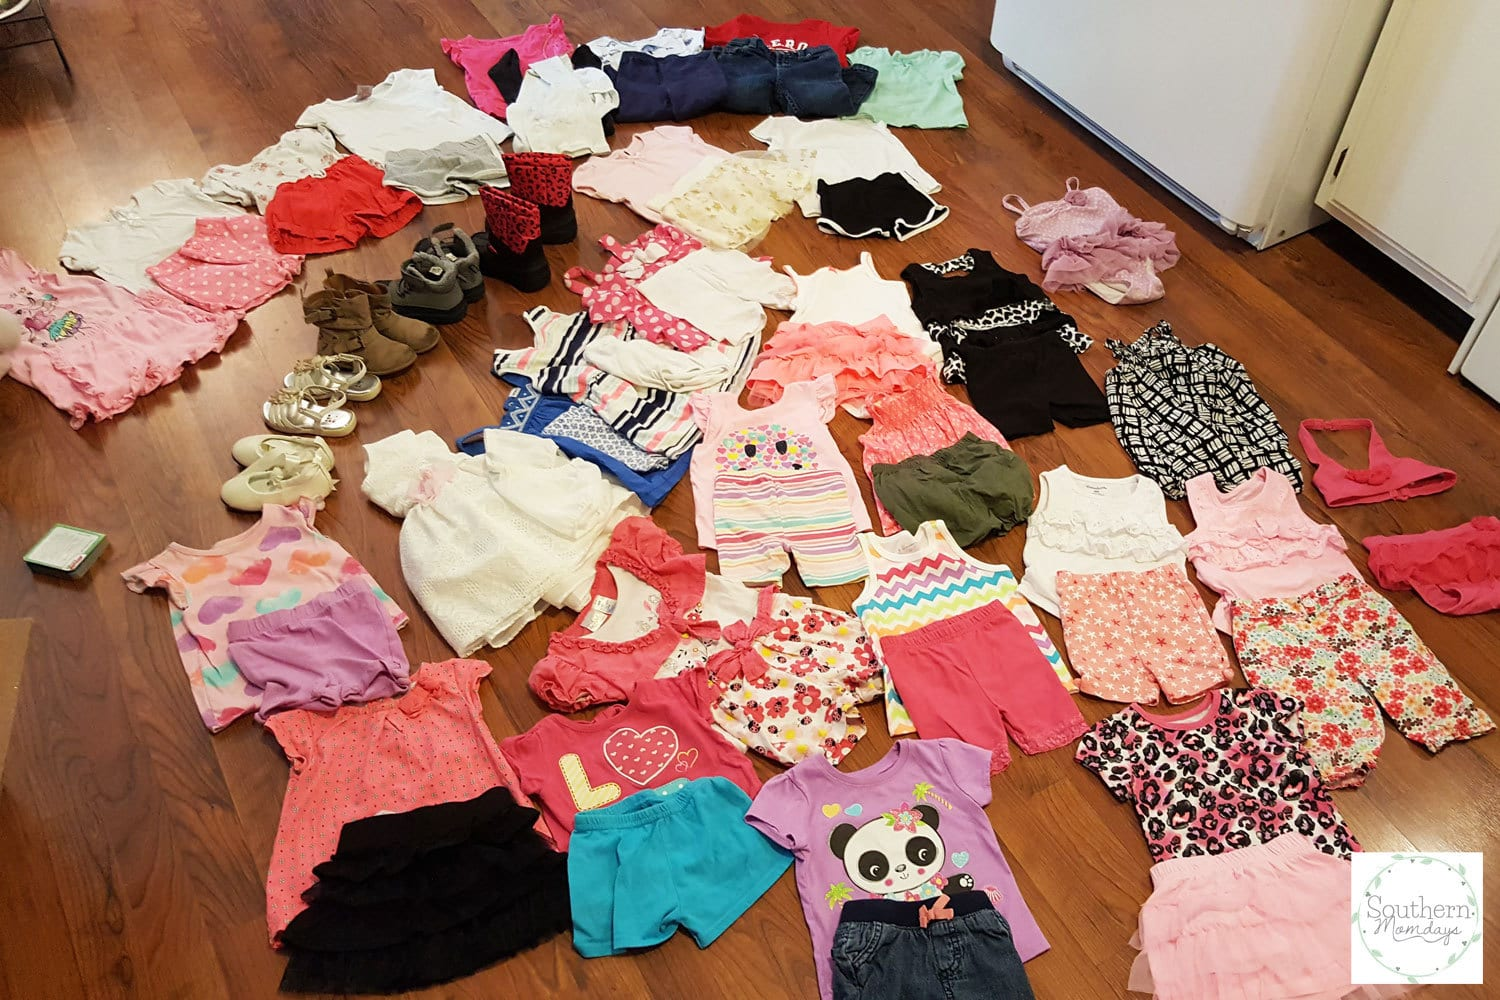 a293c8a3d57 Baby Consignment  8 Must-Know Tips Before Buying - Southern Momdays